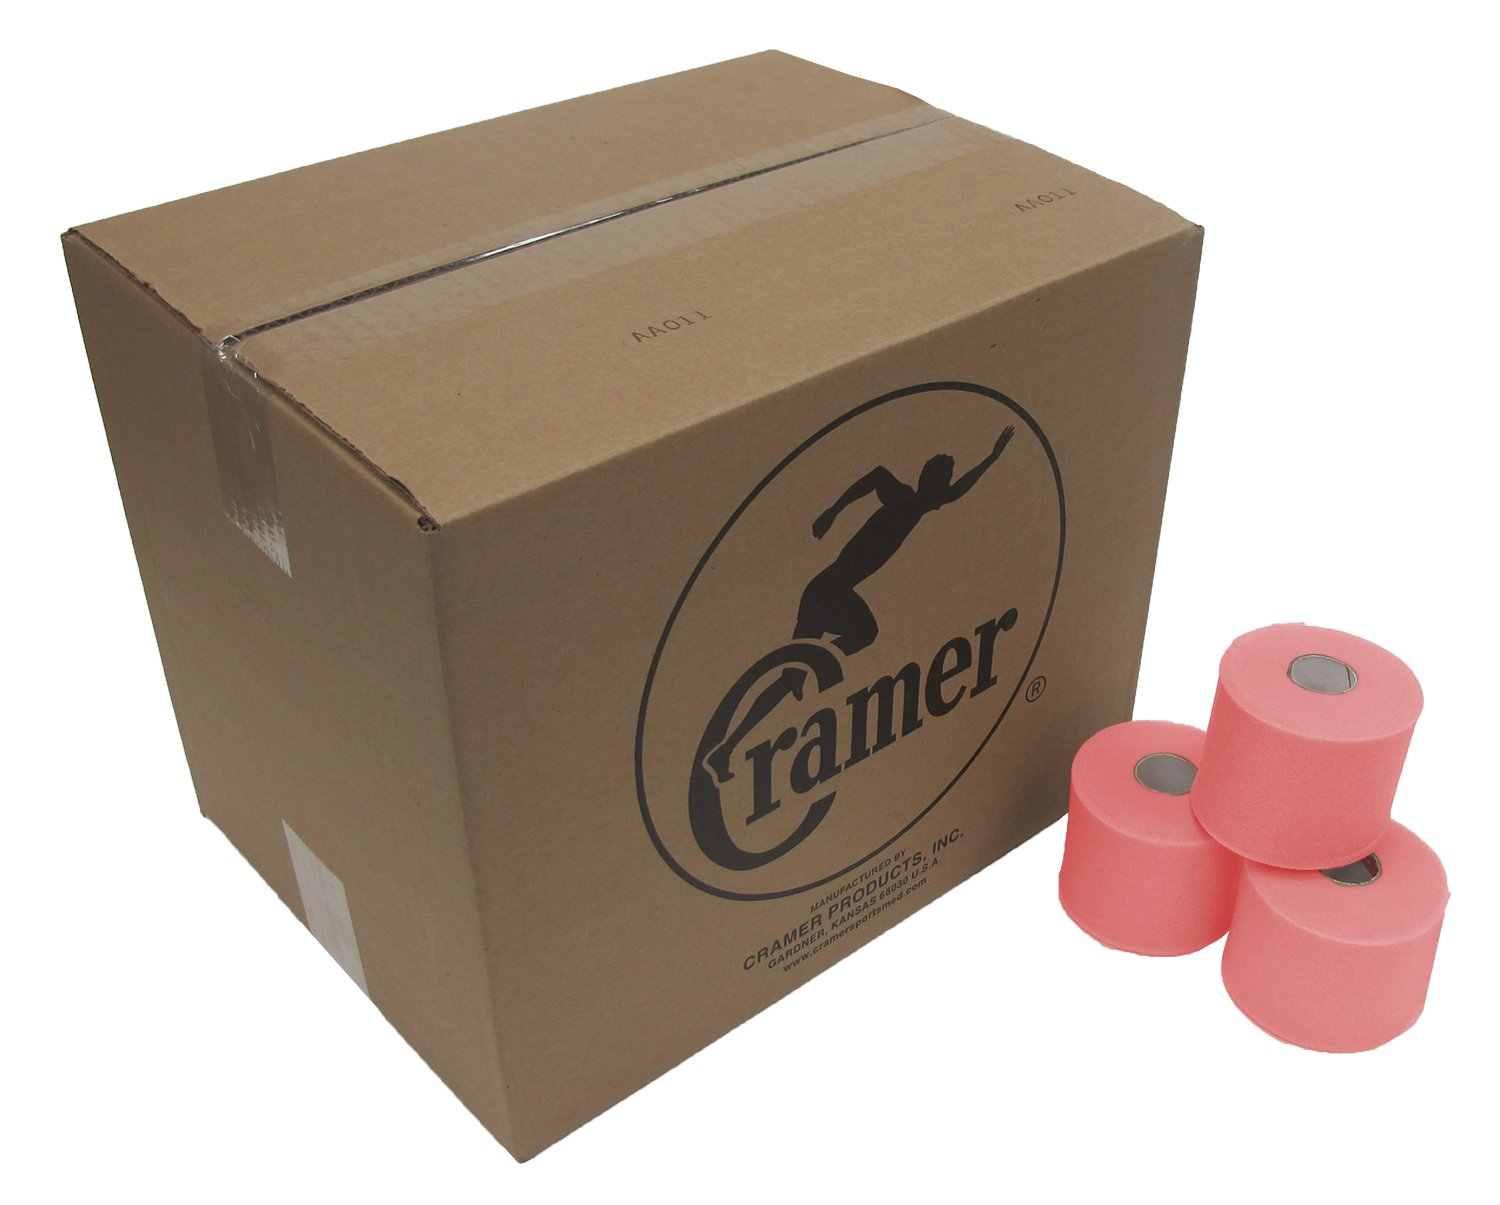 Cramer Tape Underwrap, Bulk Case of 48 Rolls of PreWrap for Athletic Taping, Hair Tie, Headband, Patellar Support, Pre-Wrap Athletic Tape Supplies, 2.75'' X 30 Yard Rolls of Pre Wrap